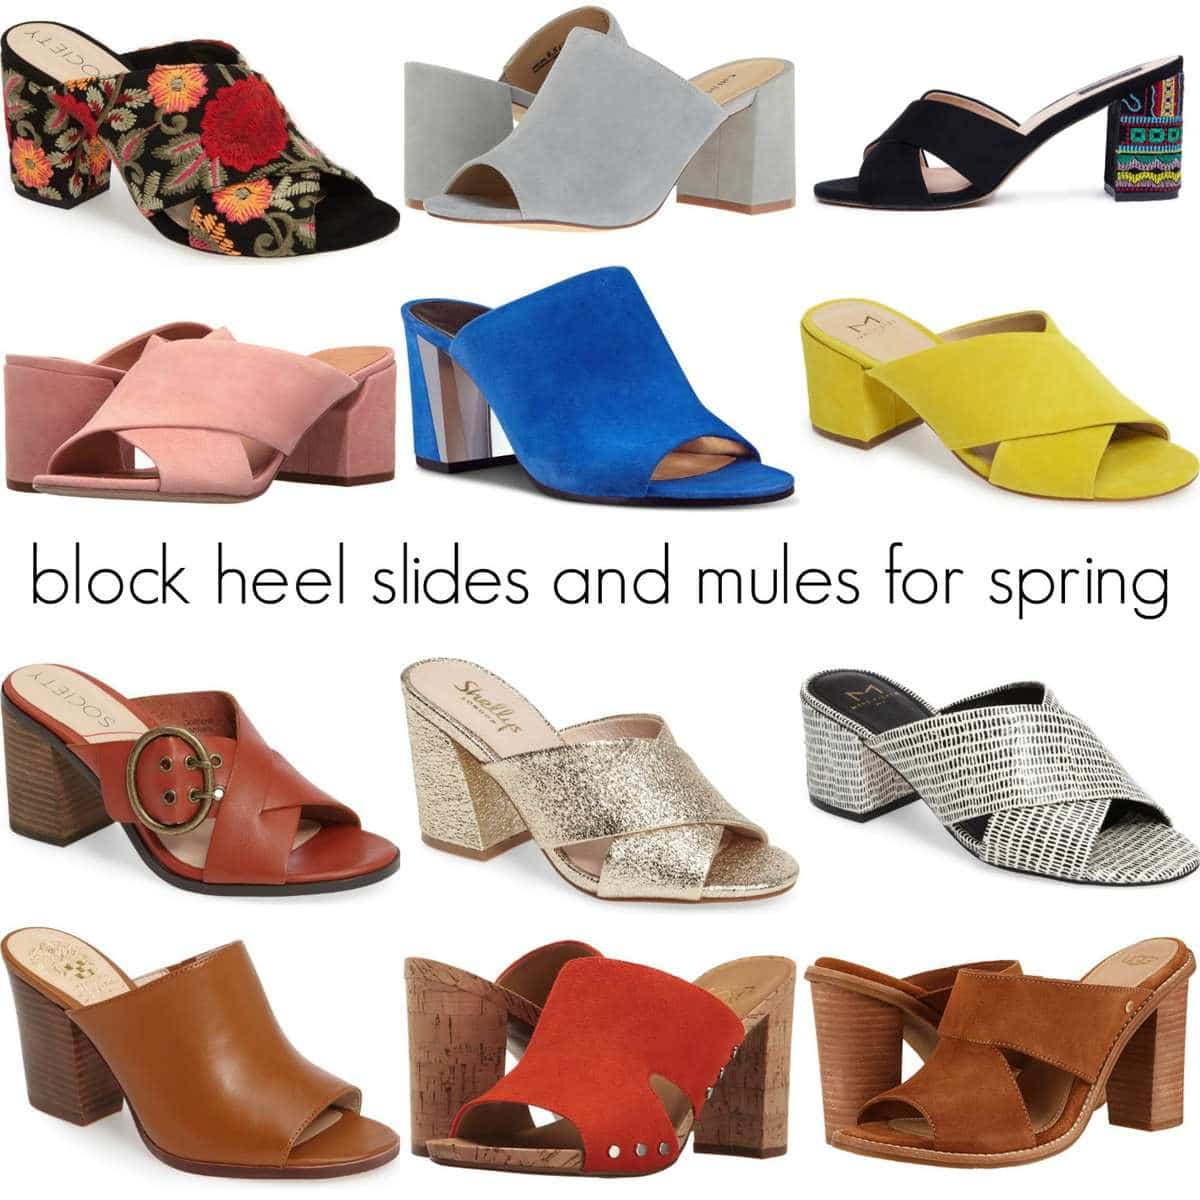 spring shoe trend - block heel slides and mules by Wardrobe Oxygen